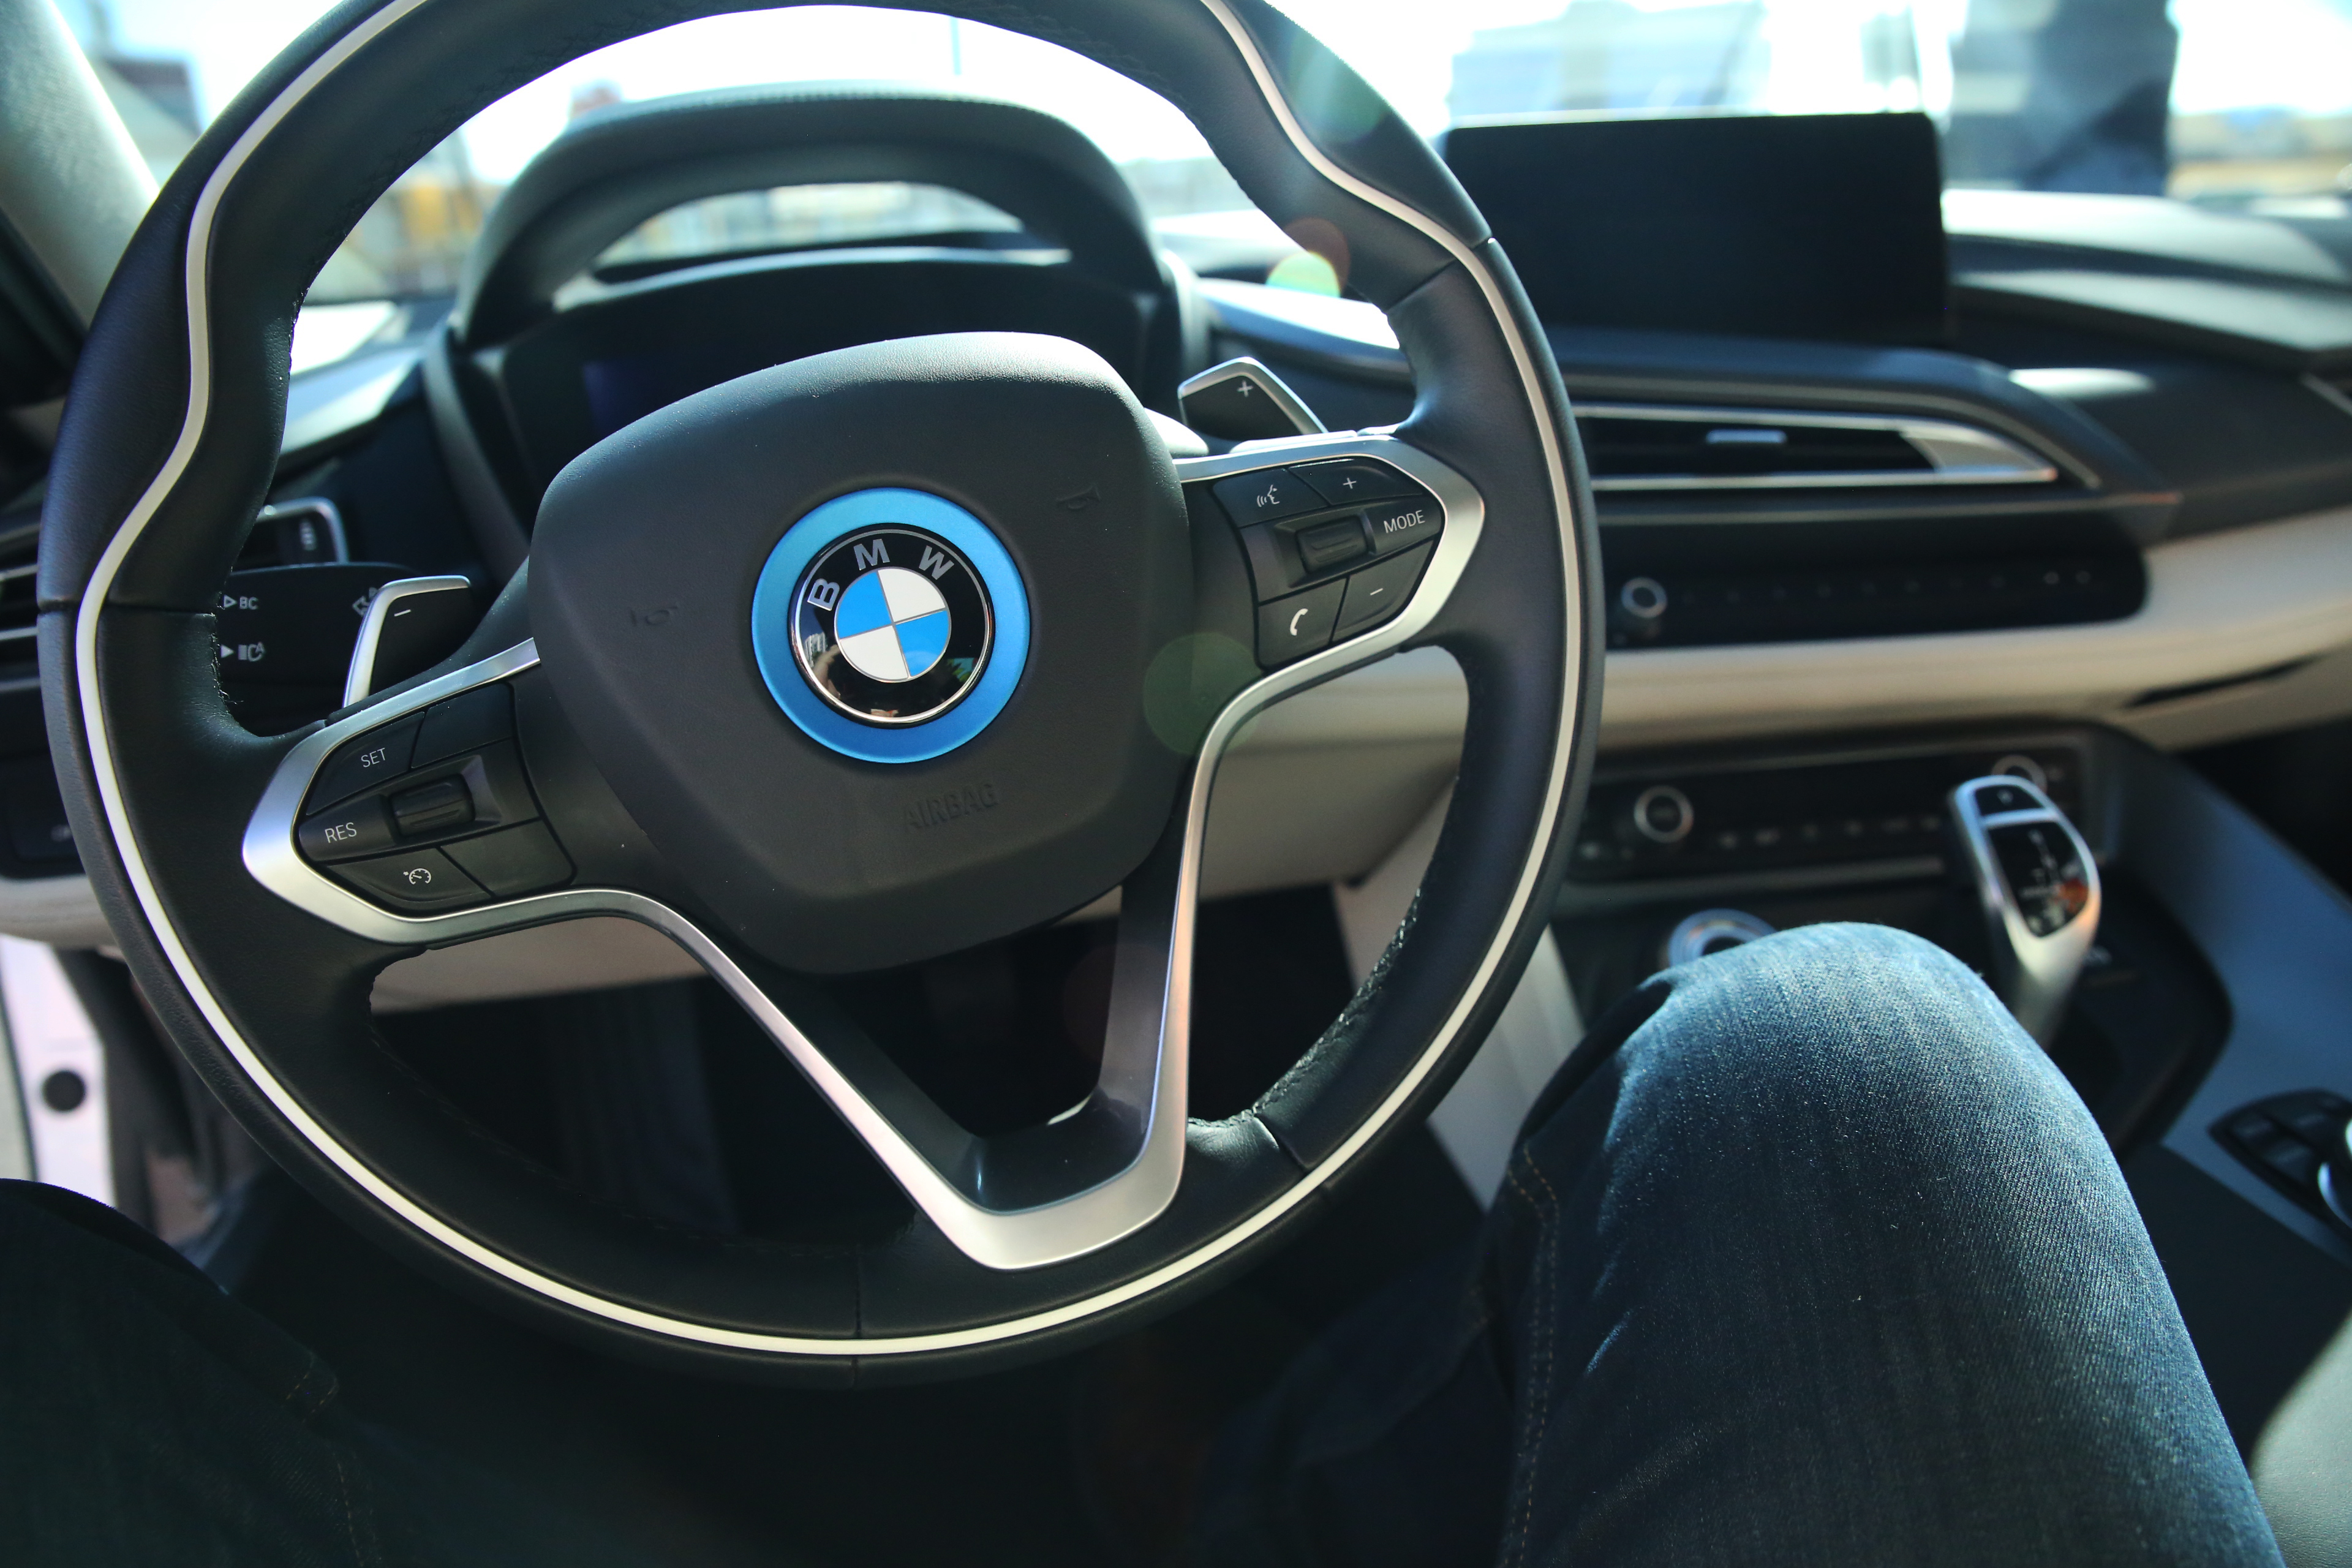 Bmw Mobileye And Intel Are Building A Full Self Driving Car For 2021 Techcrunch